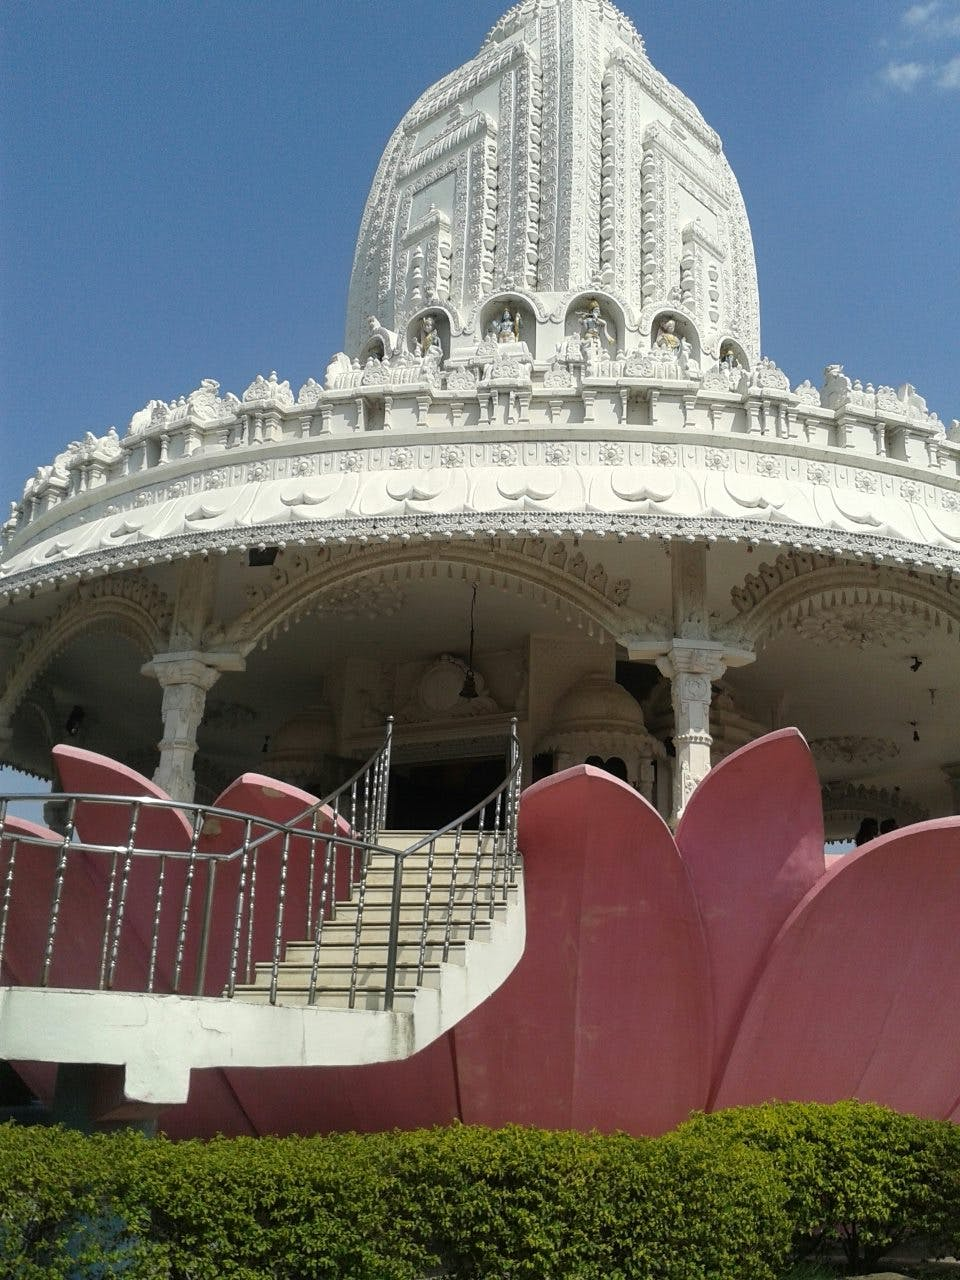 Landmark,Architecture,Building,Historic site,Sky,Tourist attraction,Temple,Tourism,World,Hindu temple